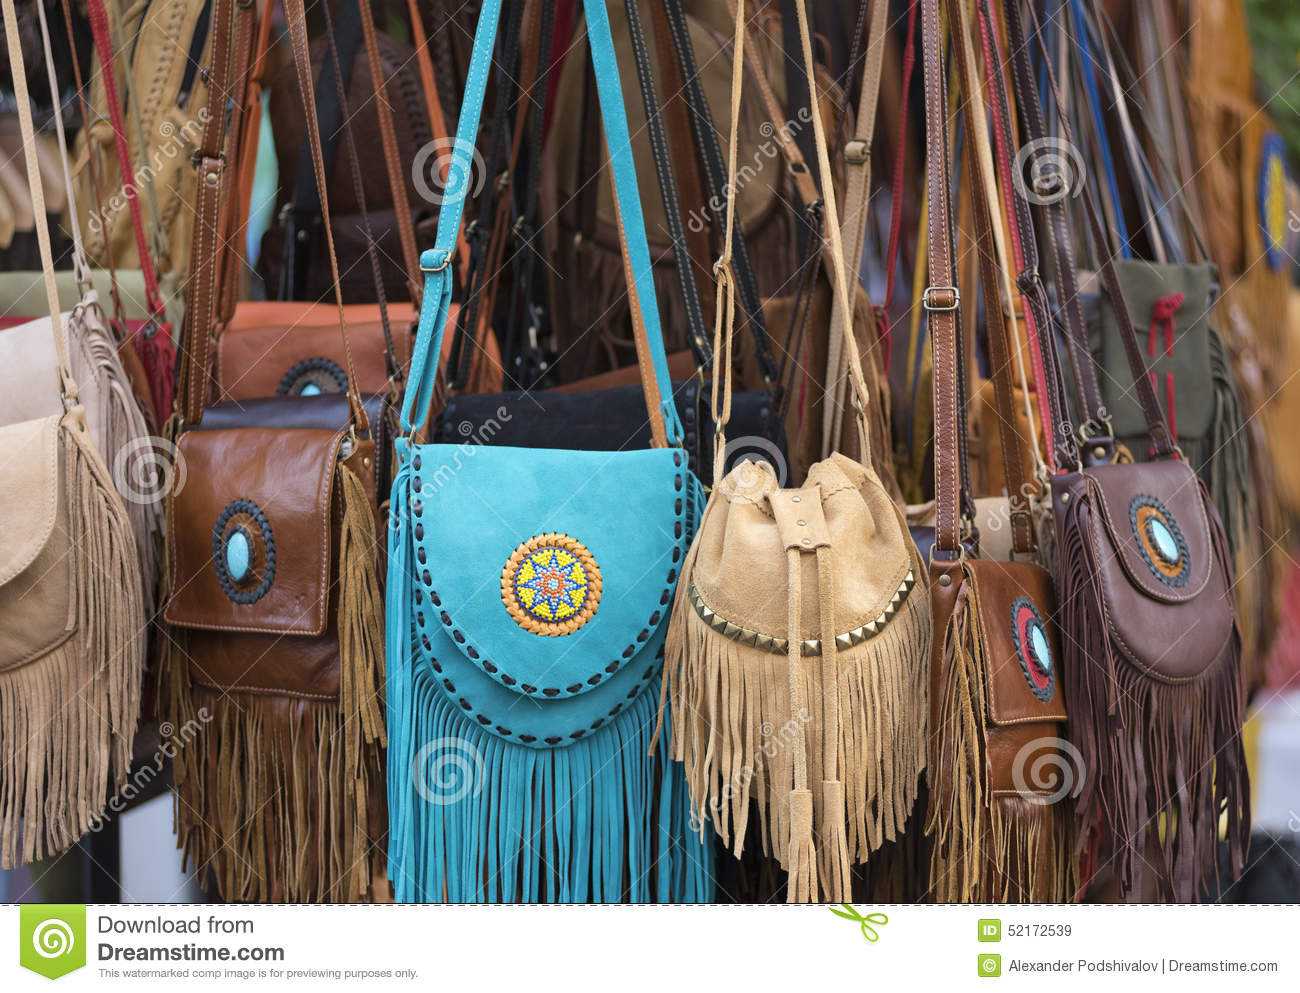 Leather Bags For Sale Stock Photos - Image: 31809623